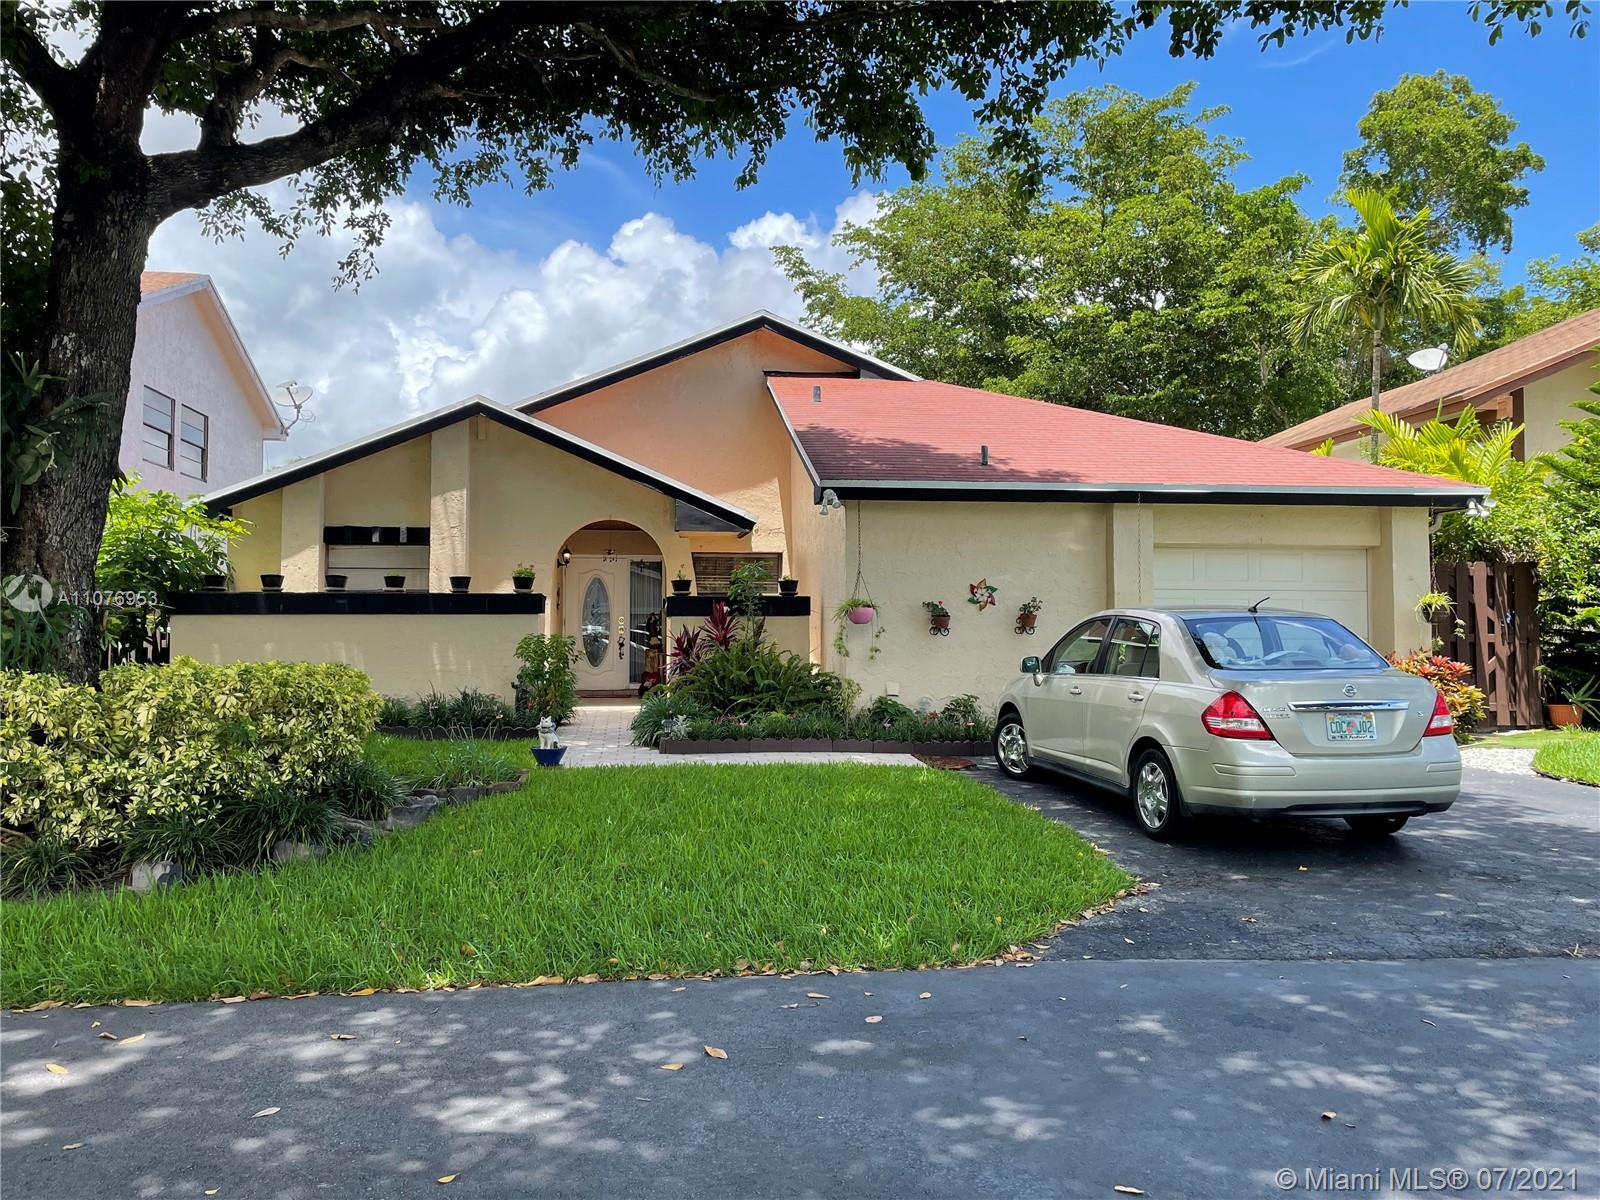 Lakes Of The Meadow - 14725 SW 42nd Ln, Miami, FL 33185